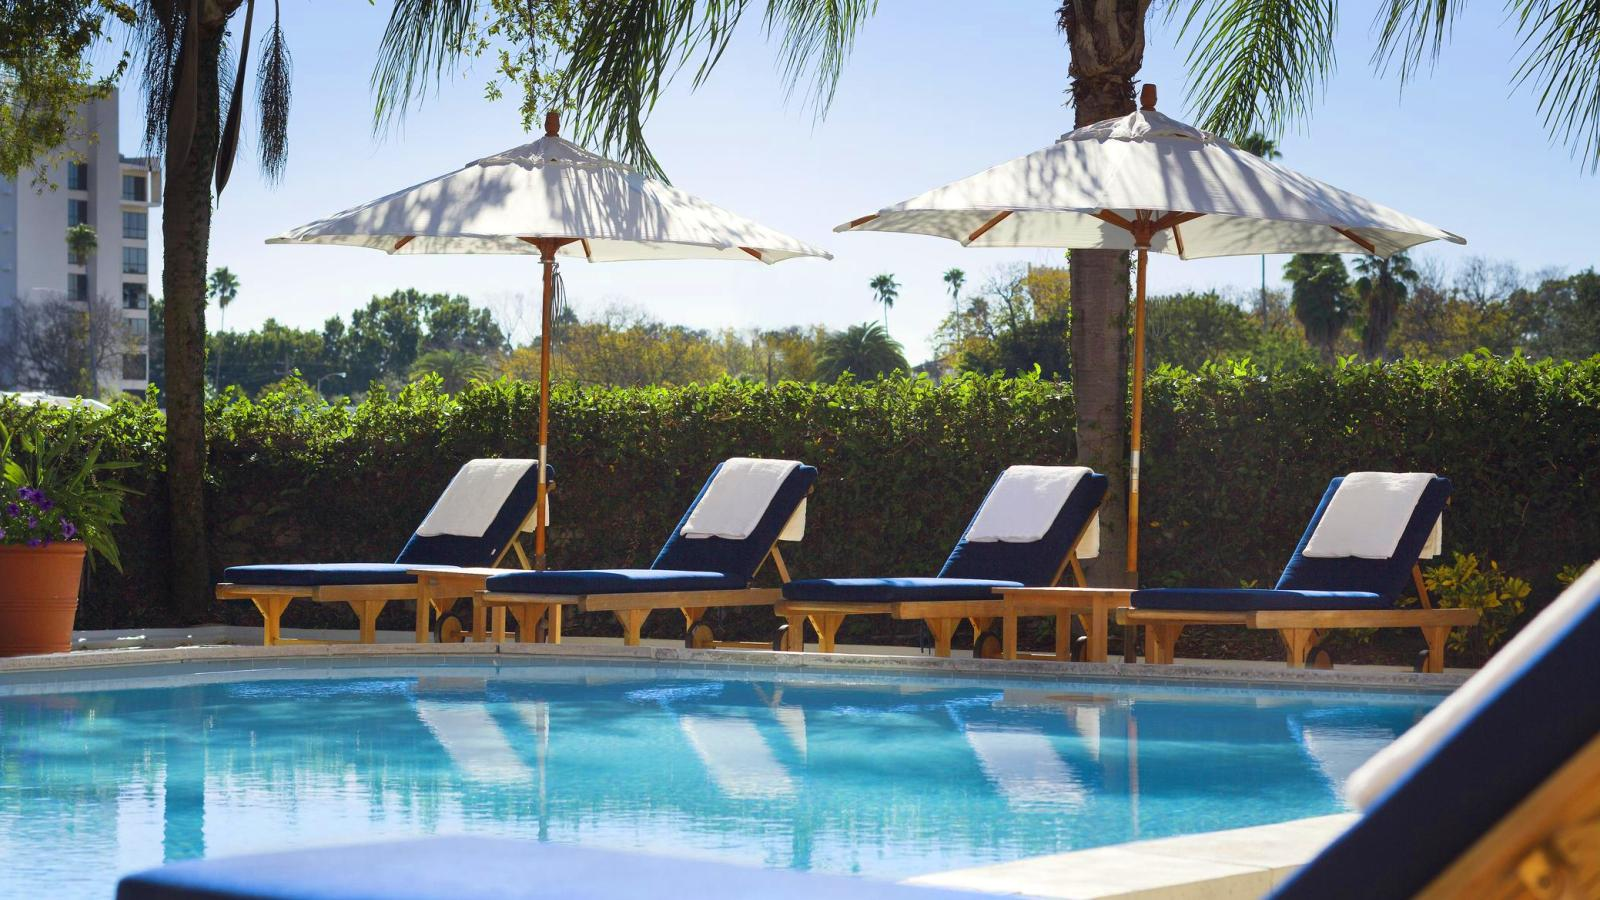 Pool Facilities at The Westin Tampa Harbour Island